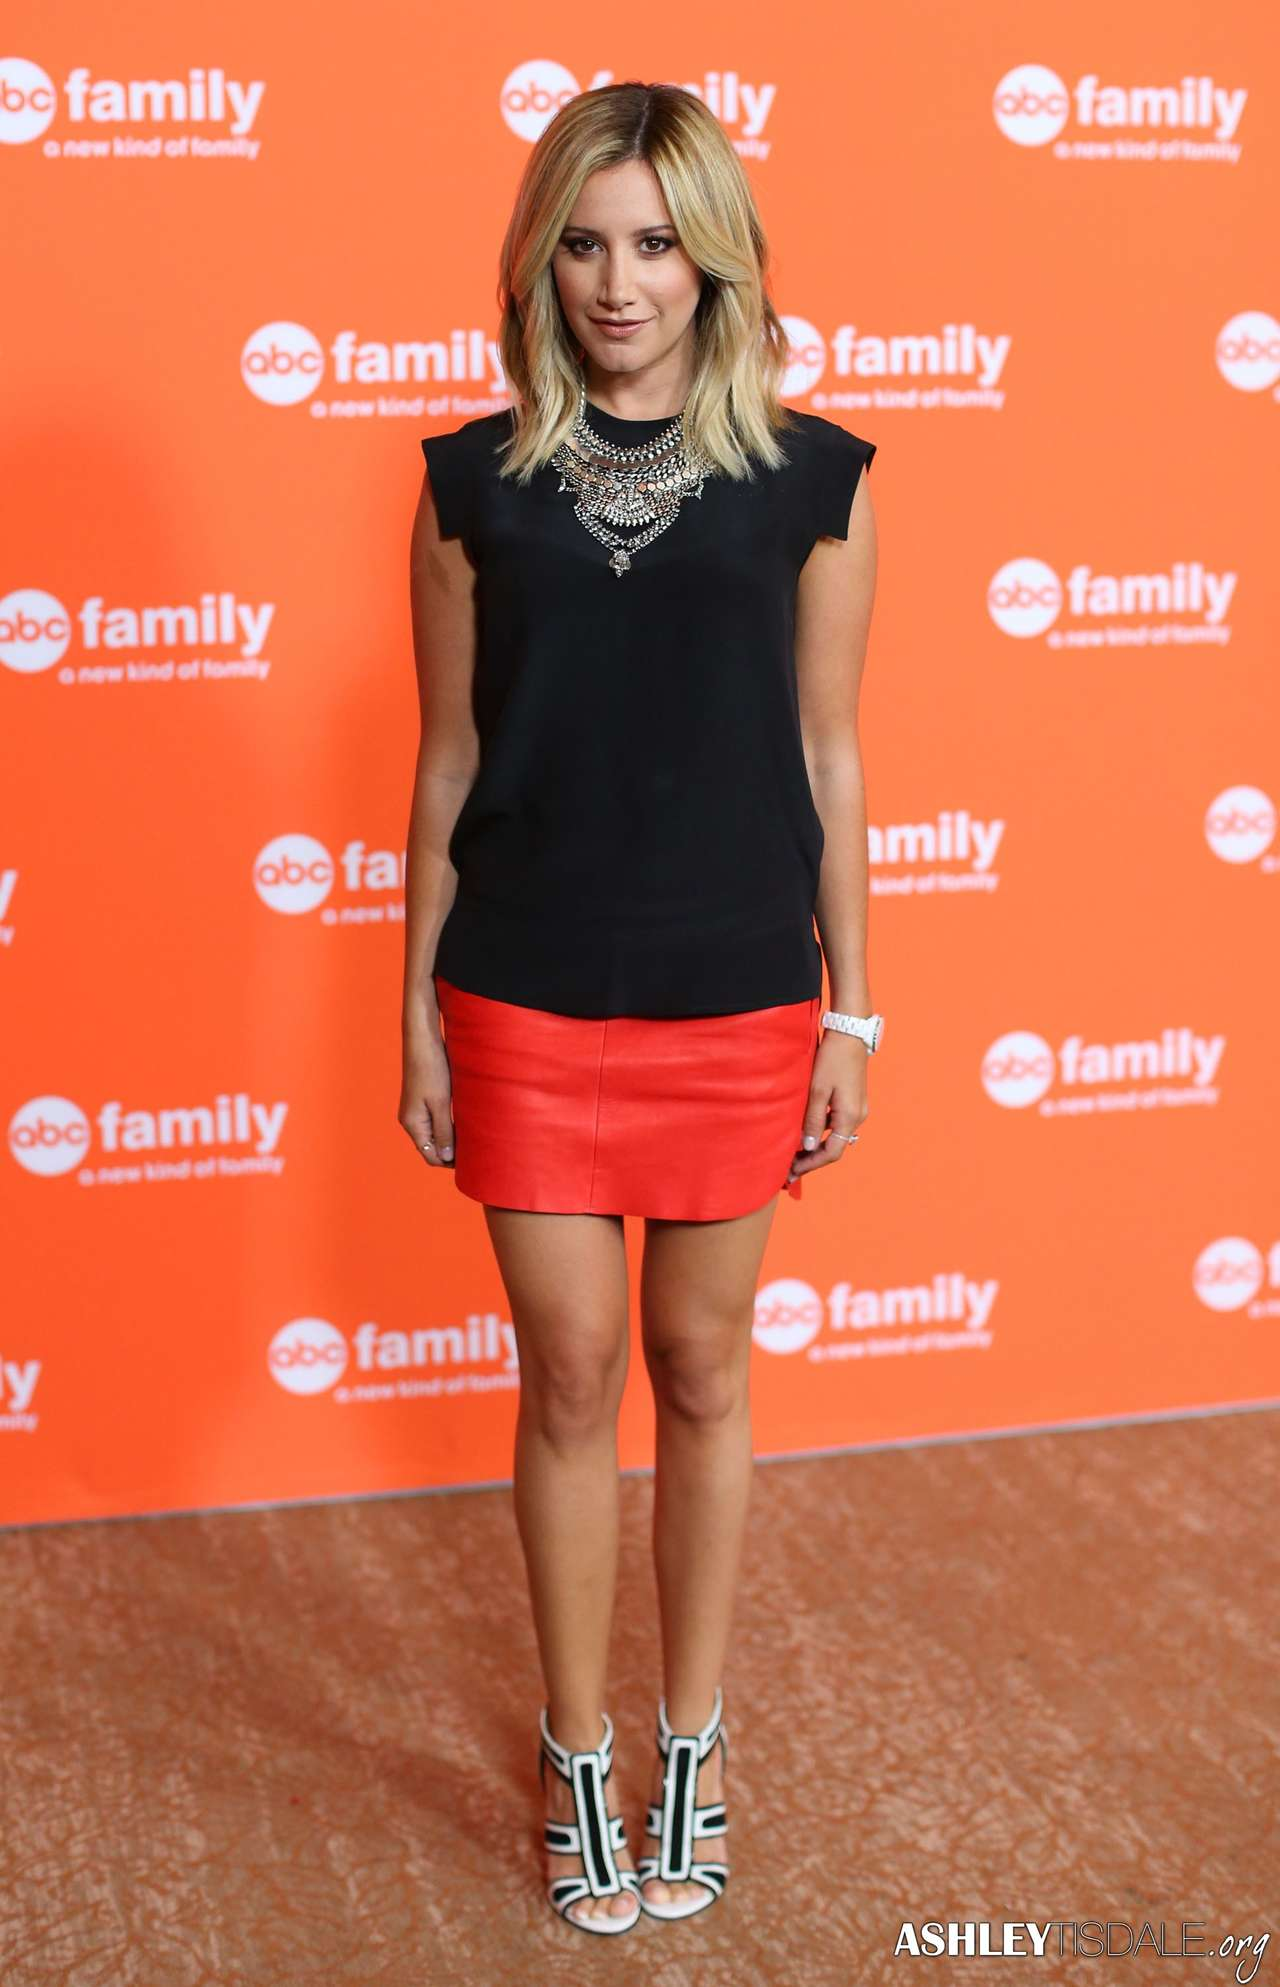 Ashley Tisdale 2014 : Ashley Tisdale at 2014 Disney ABC TCA Summer Press Tour in Beverly Hills -01